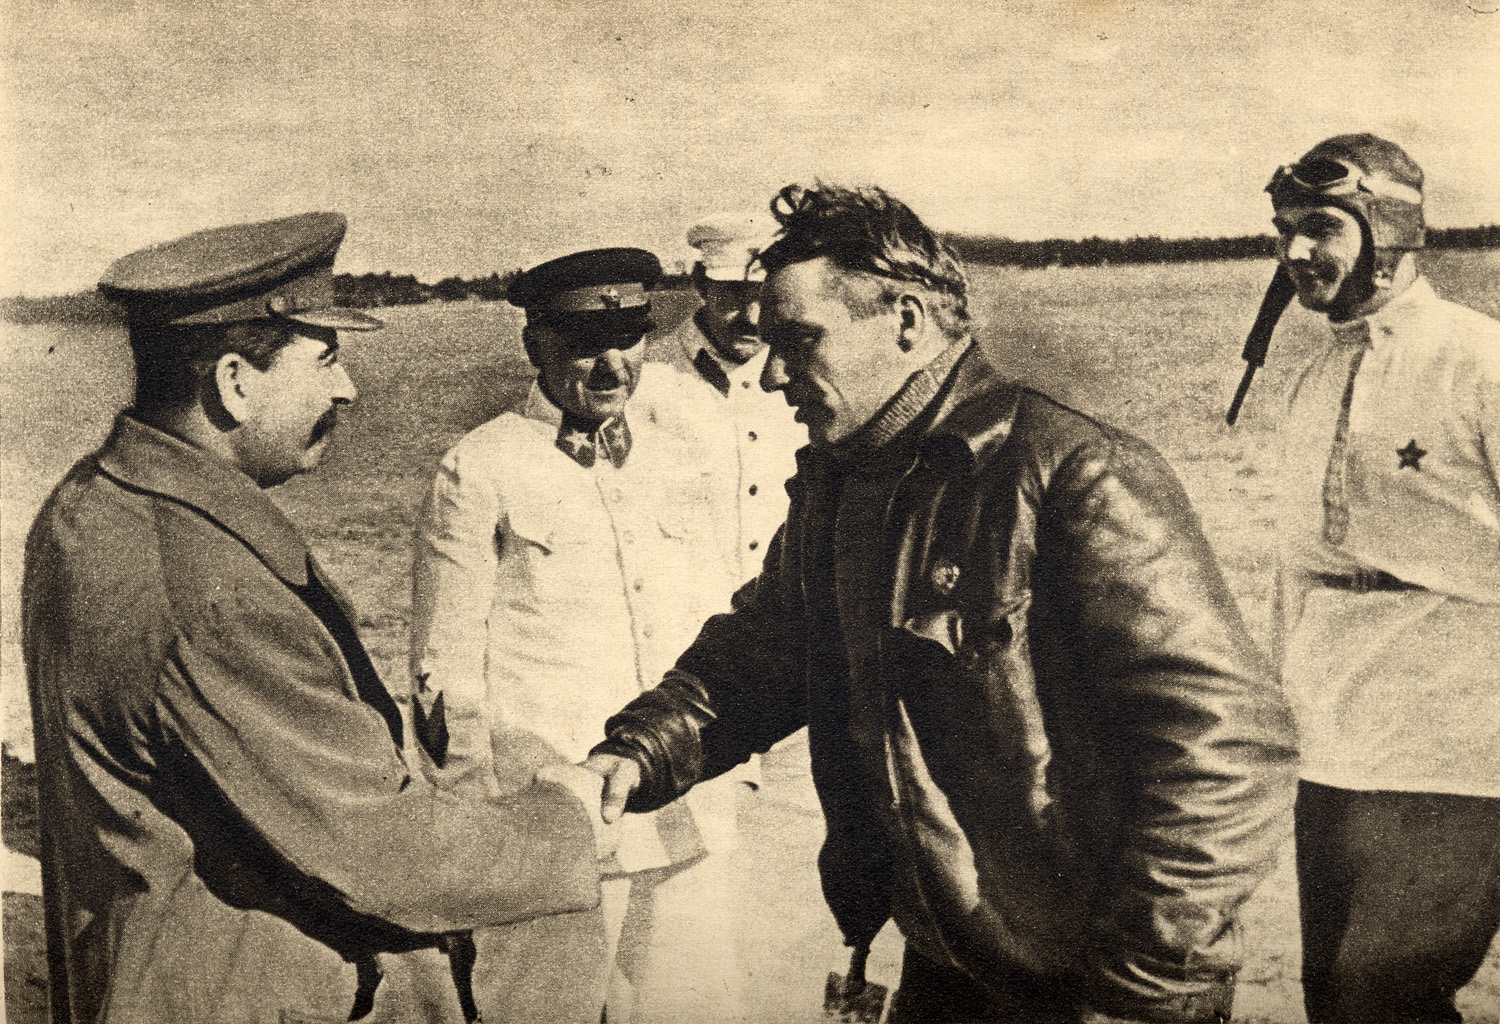 http://upload.wikimedia.org/wikipedia/commons/d/d0/Chkalov%2C_Stalin_and_Belyakov._August_10%2C_1936.jpg?uselang=ru